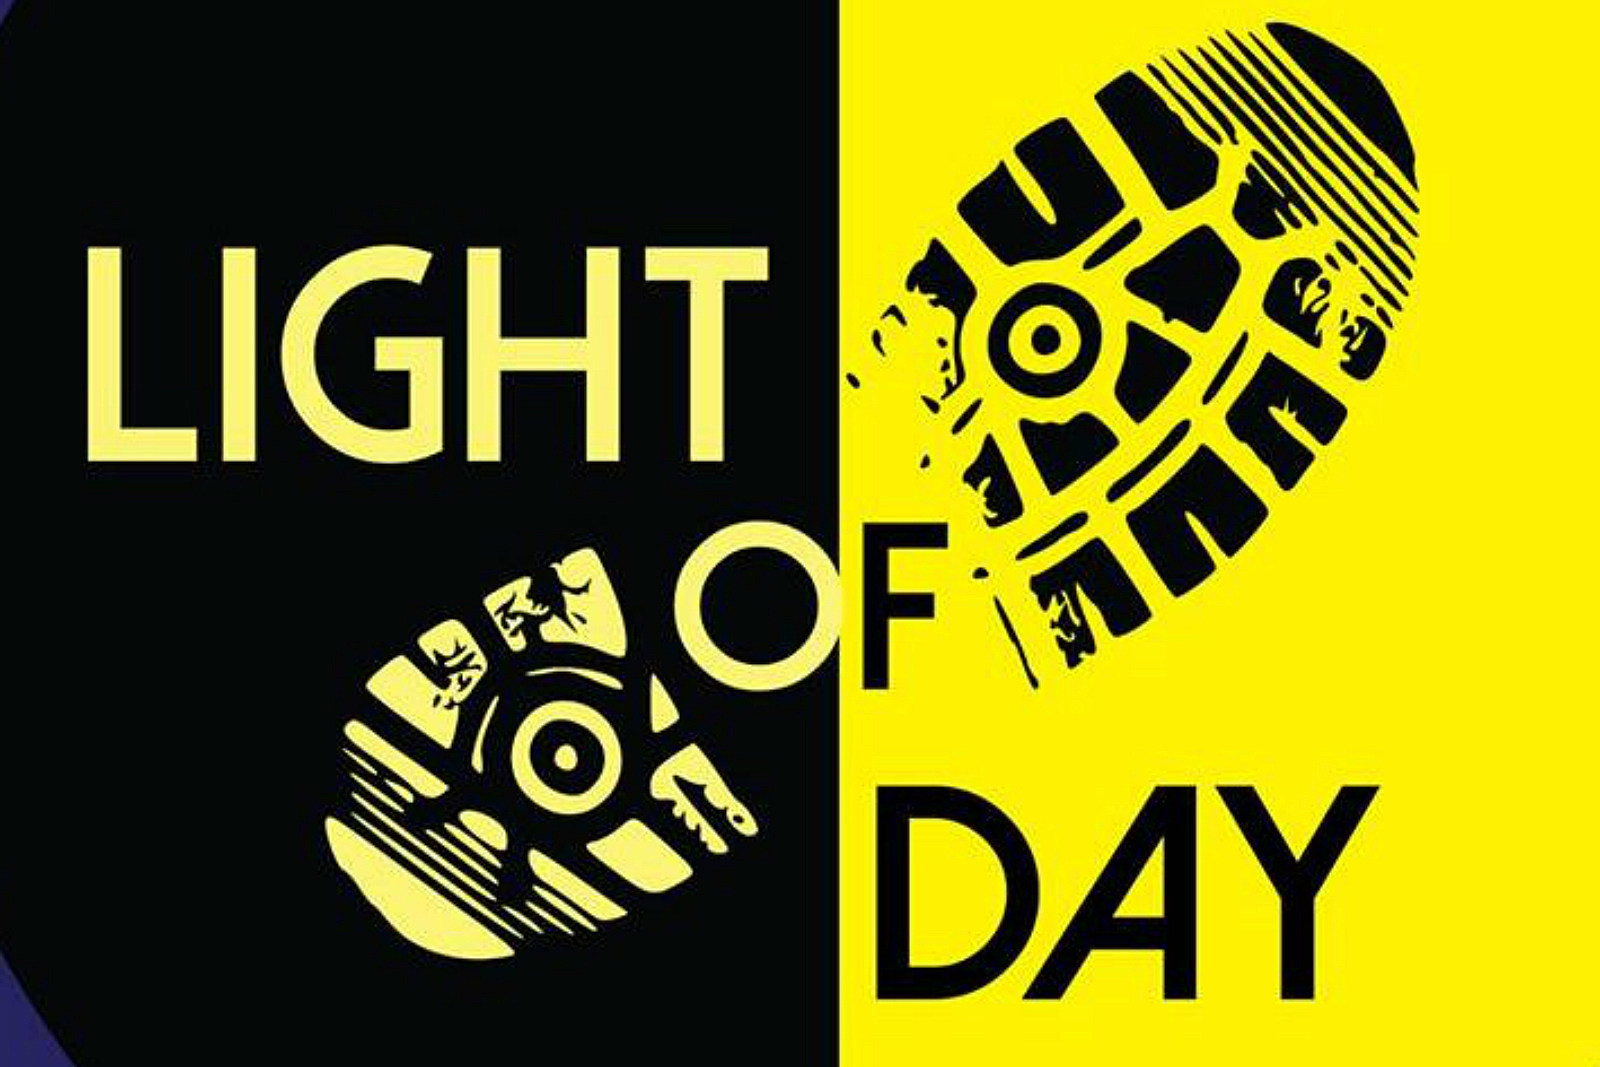 Light of Day 2017